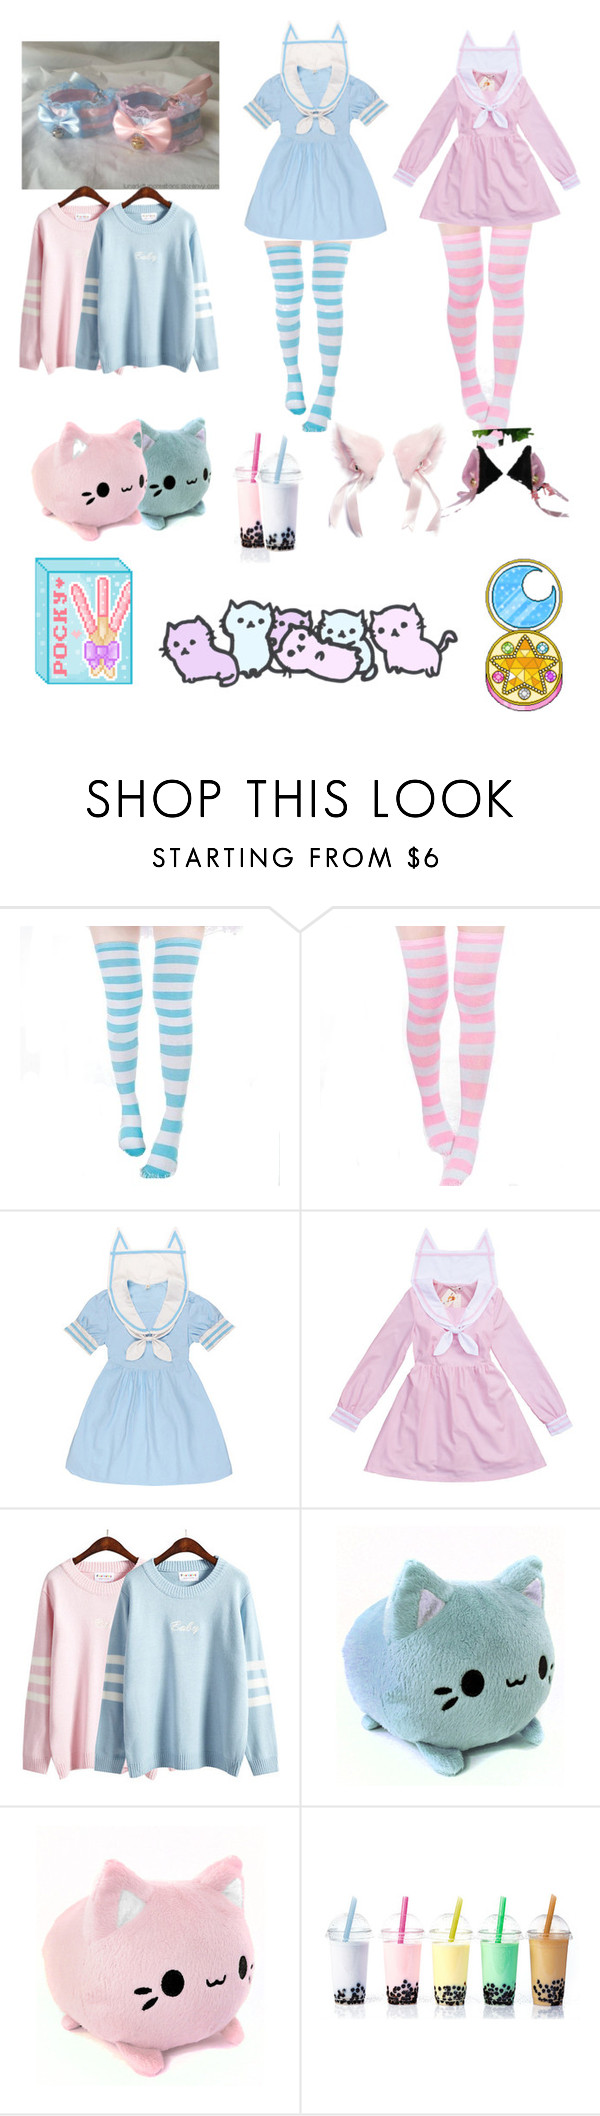 """Kawaii Pastel twin kittens"" by thefoxyokai ❤ liked on Polyvore"